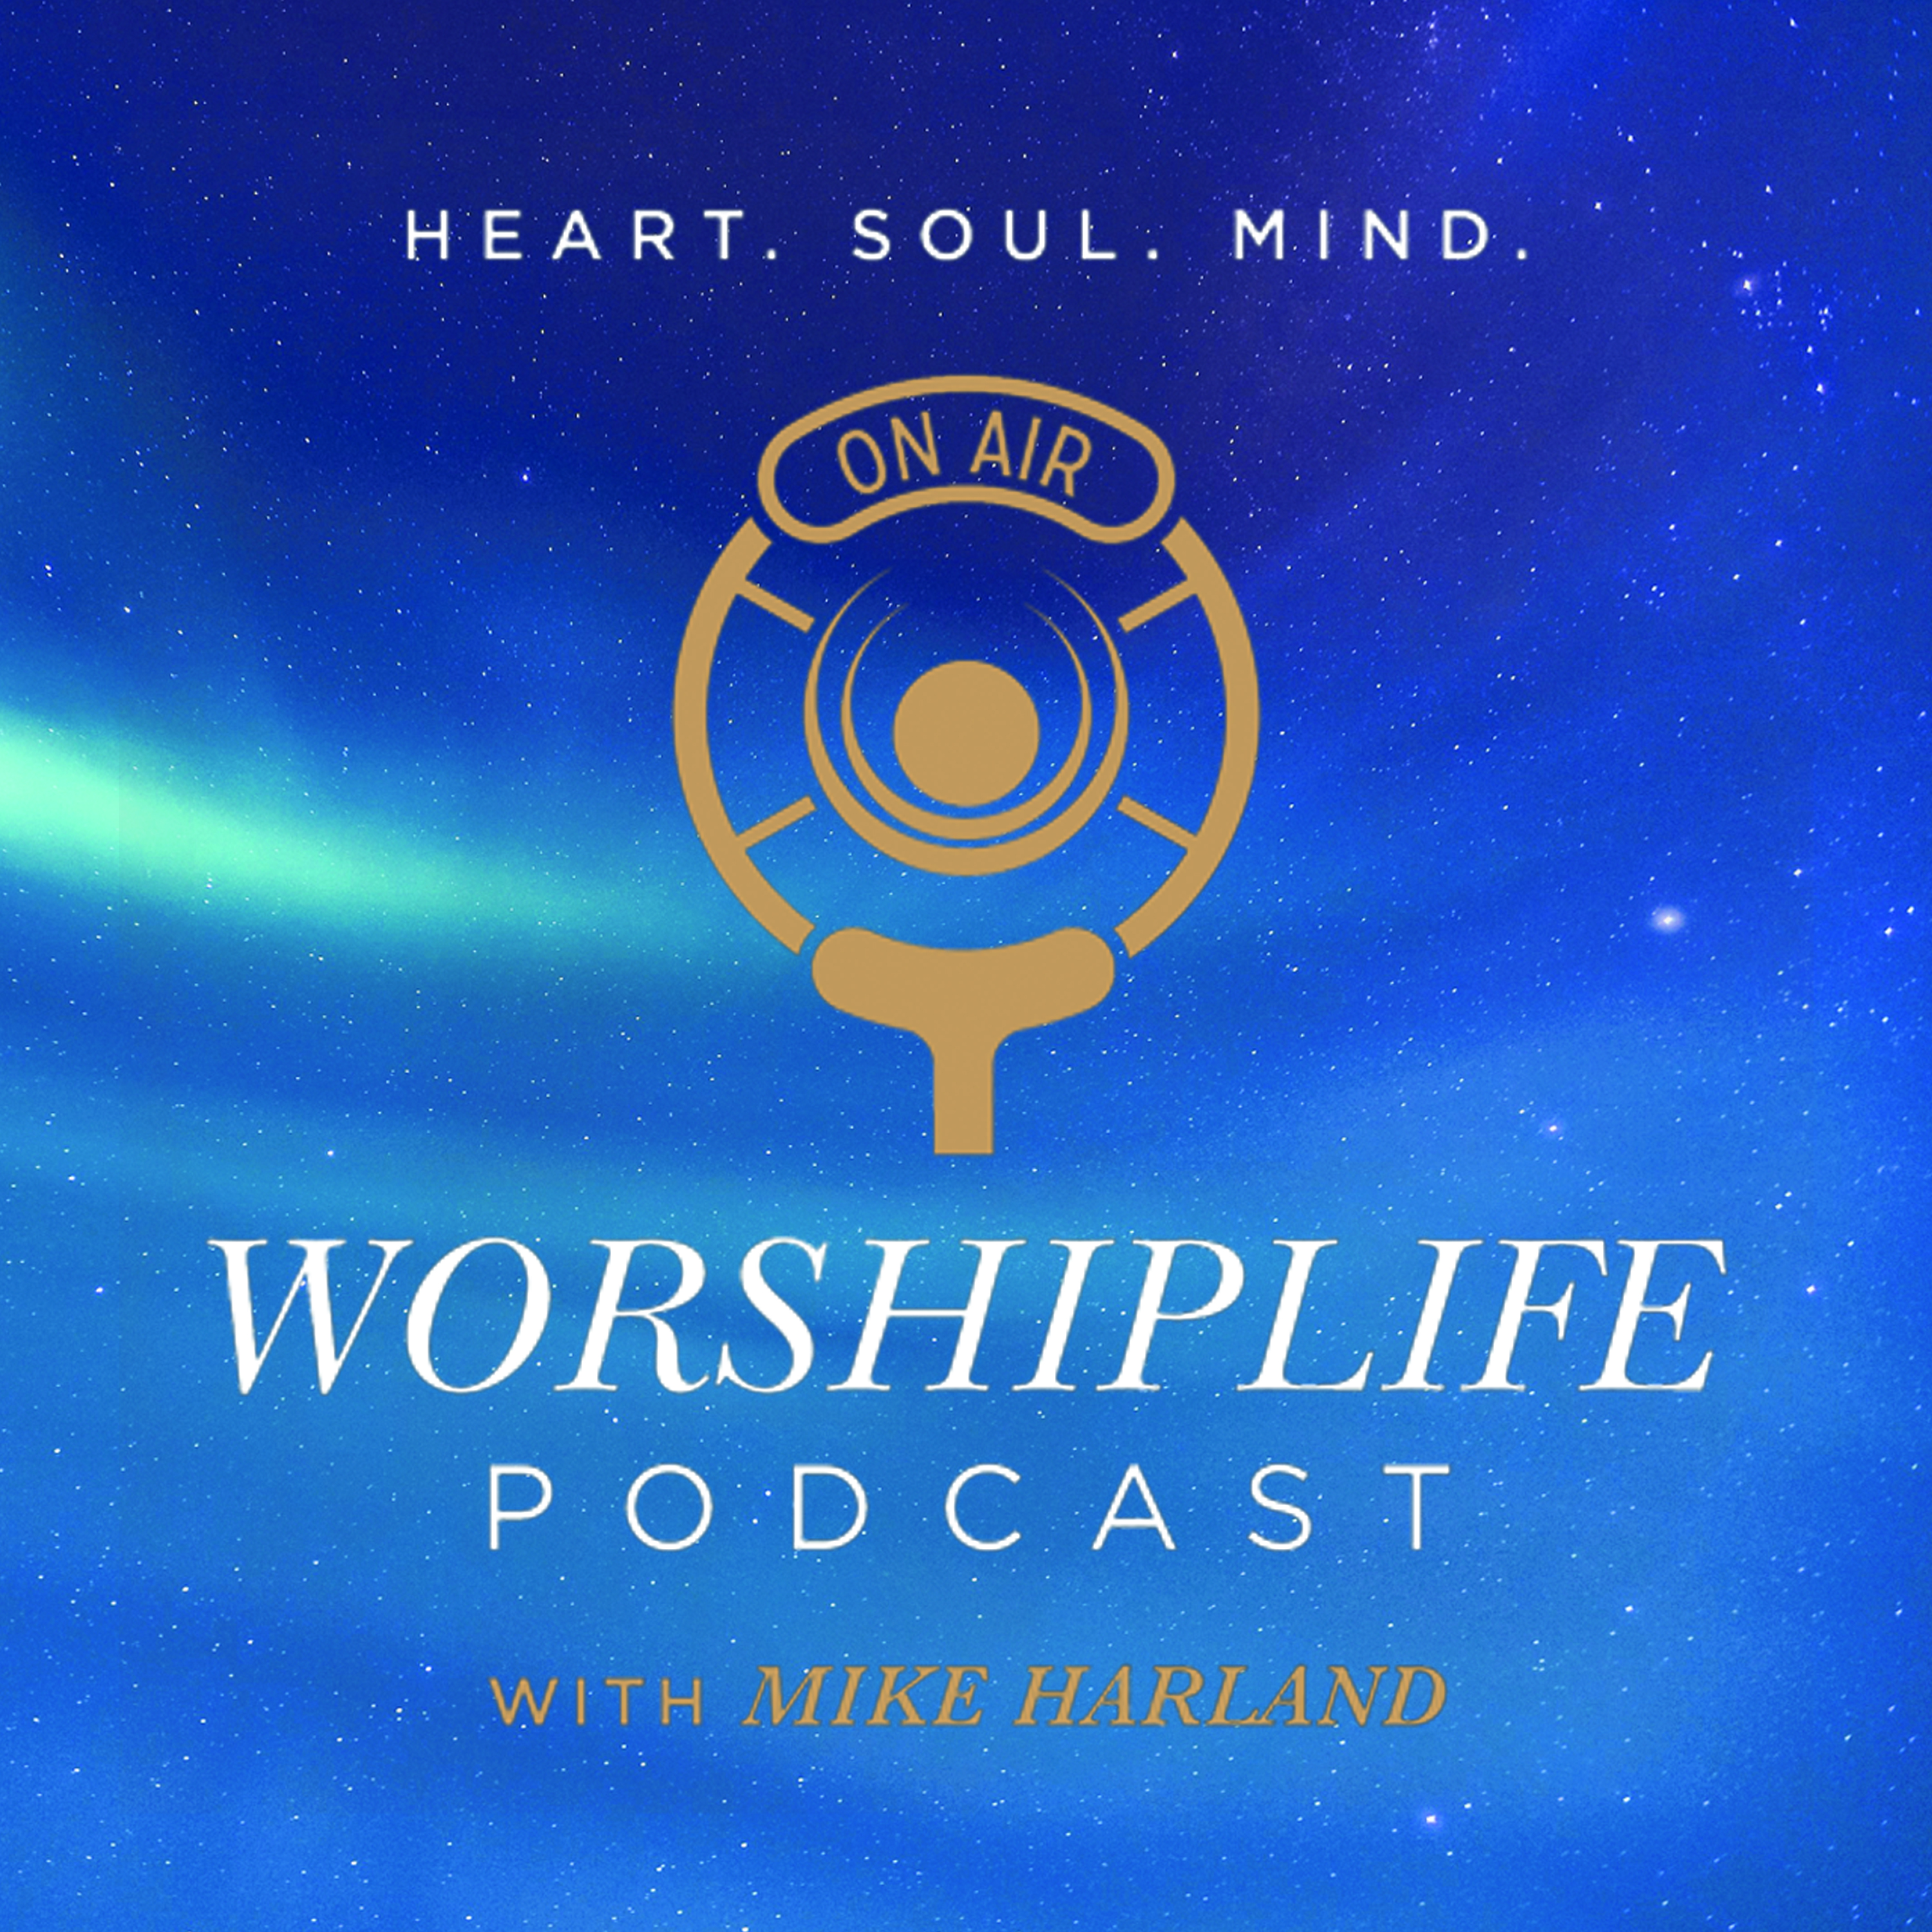 WorshipLife with Mike Harland